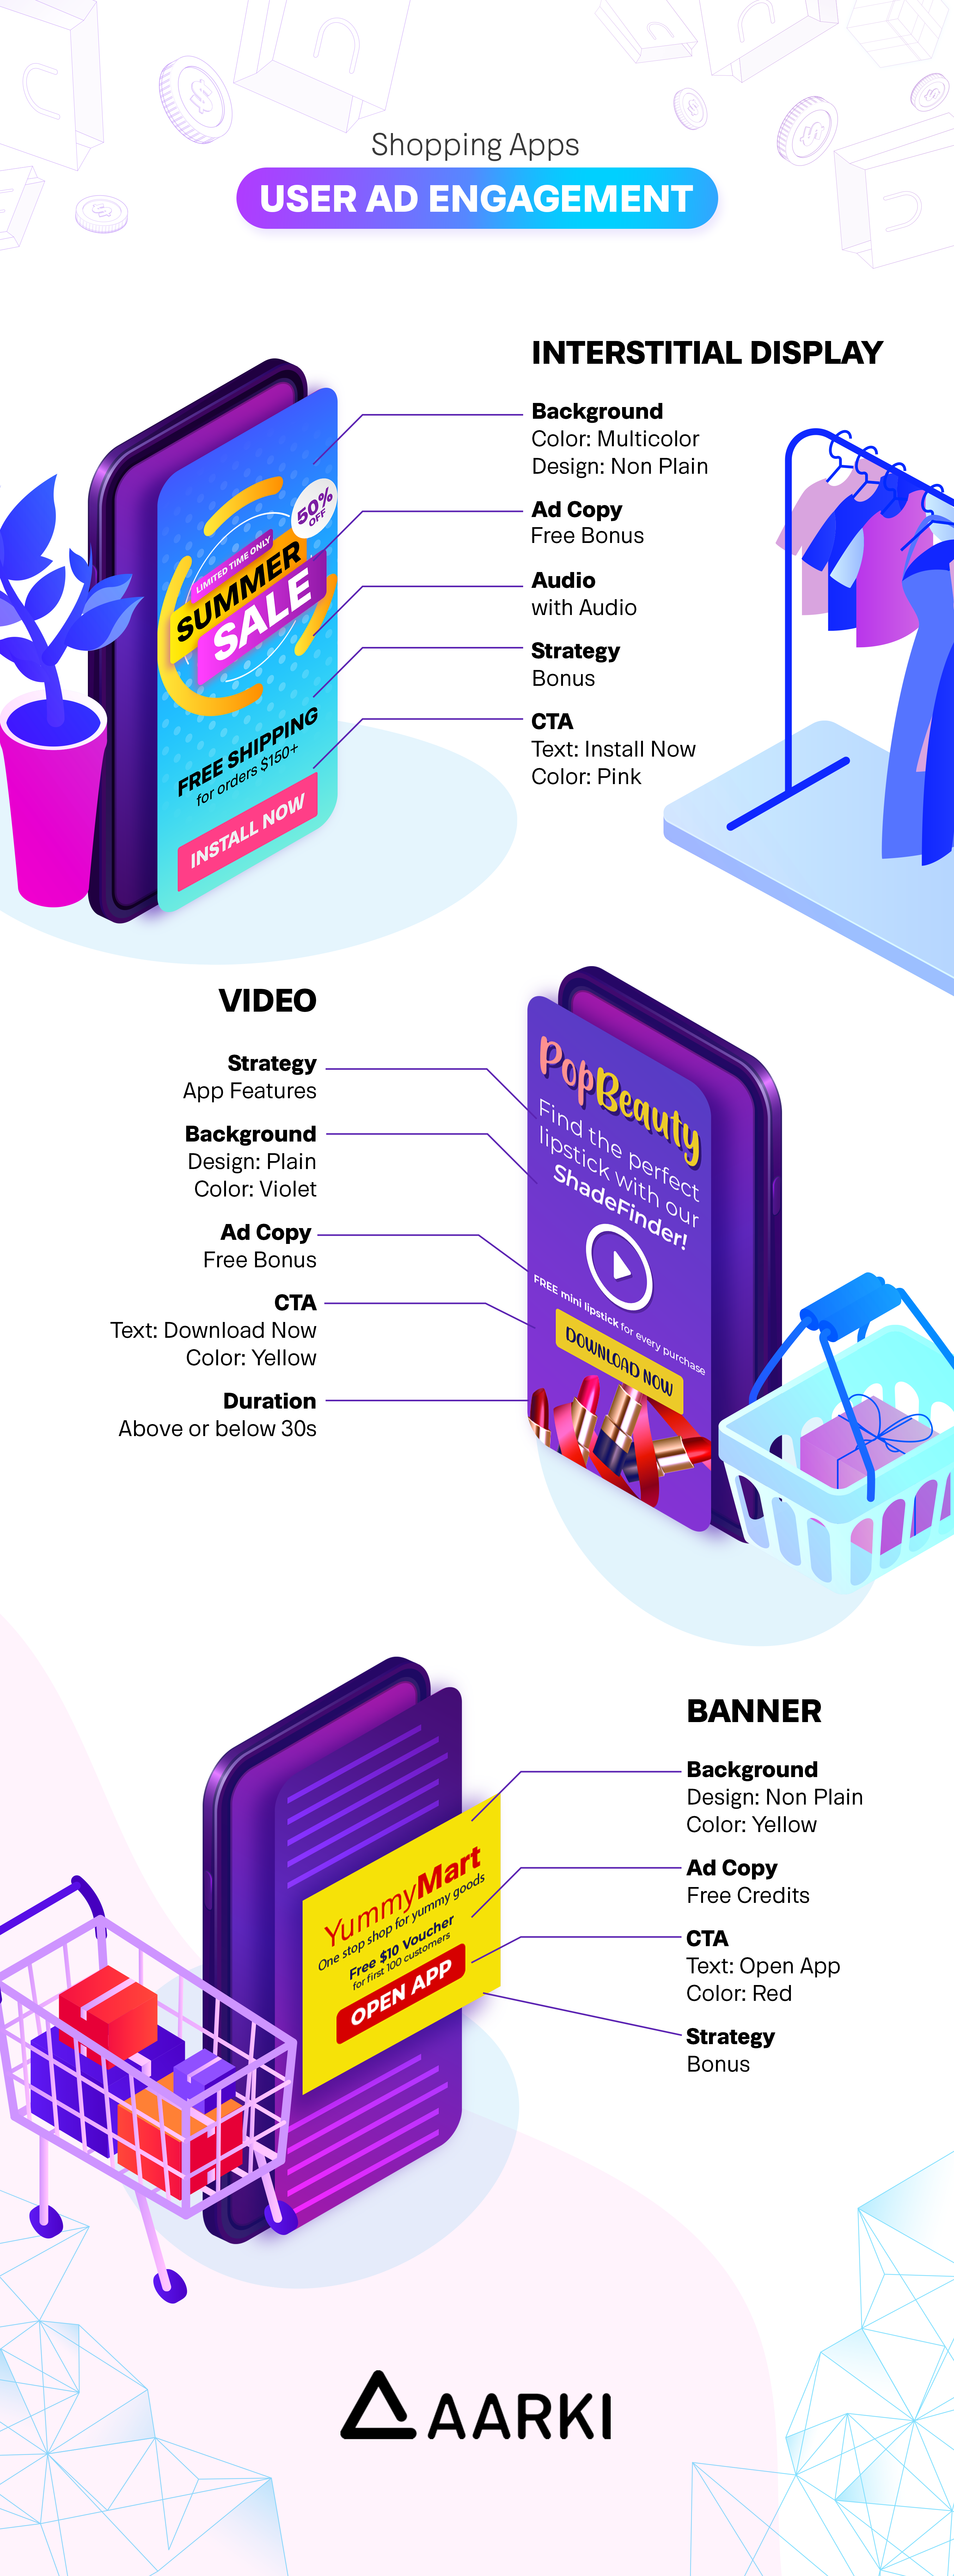 Shopping Apps Ad Engagement Infographic